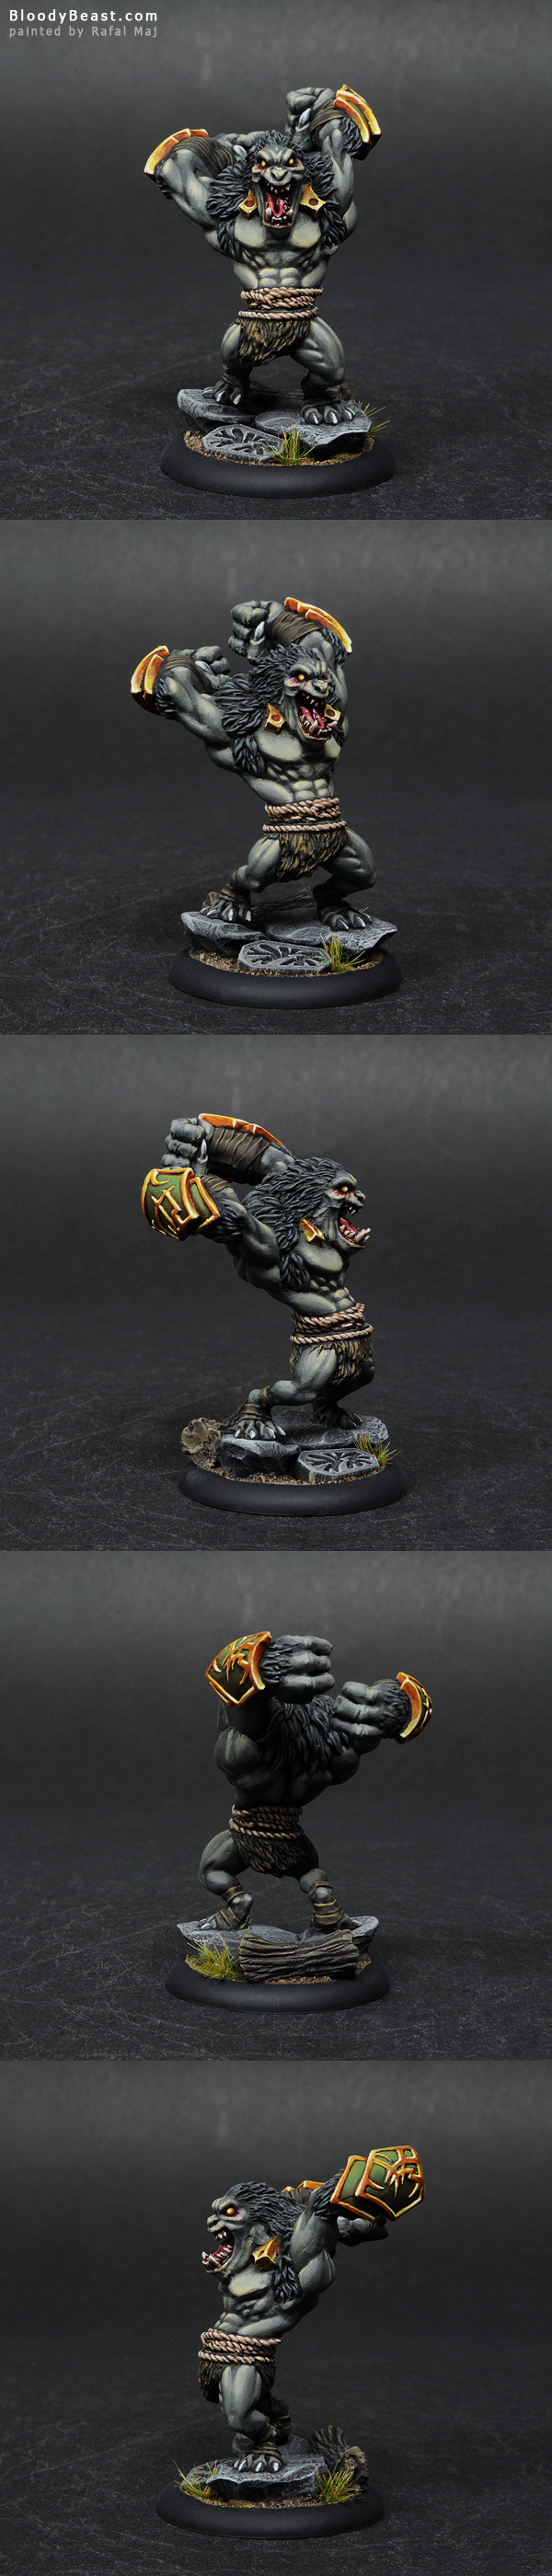 Gorax painted by Rafal Maj (BloodyBeast.com)